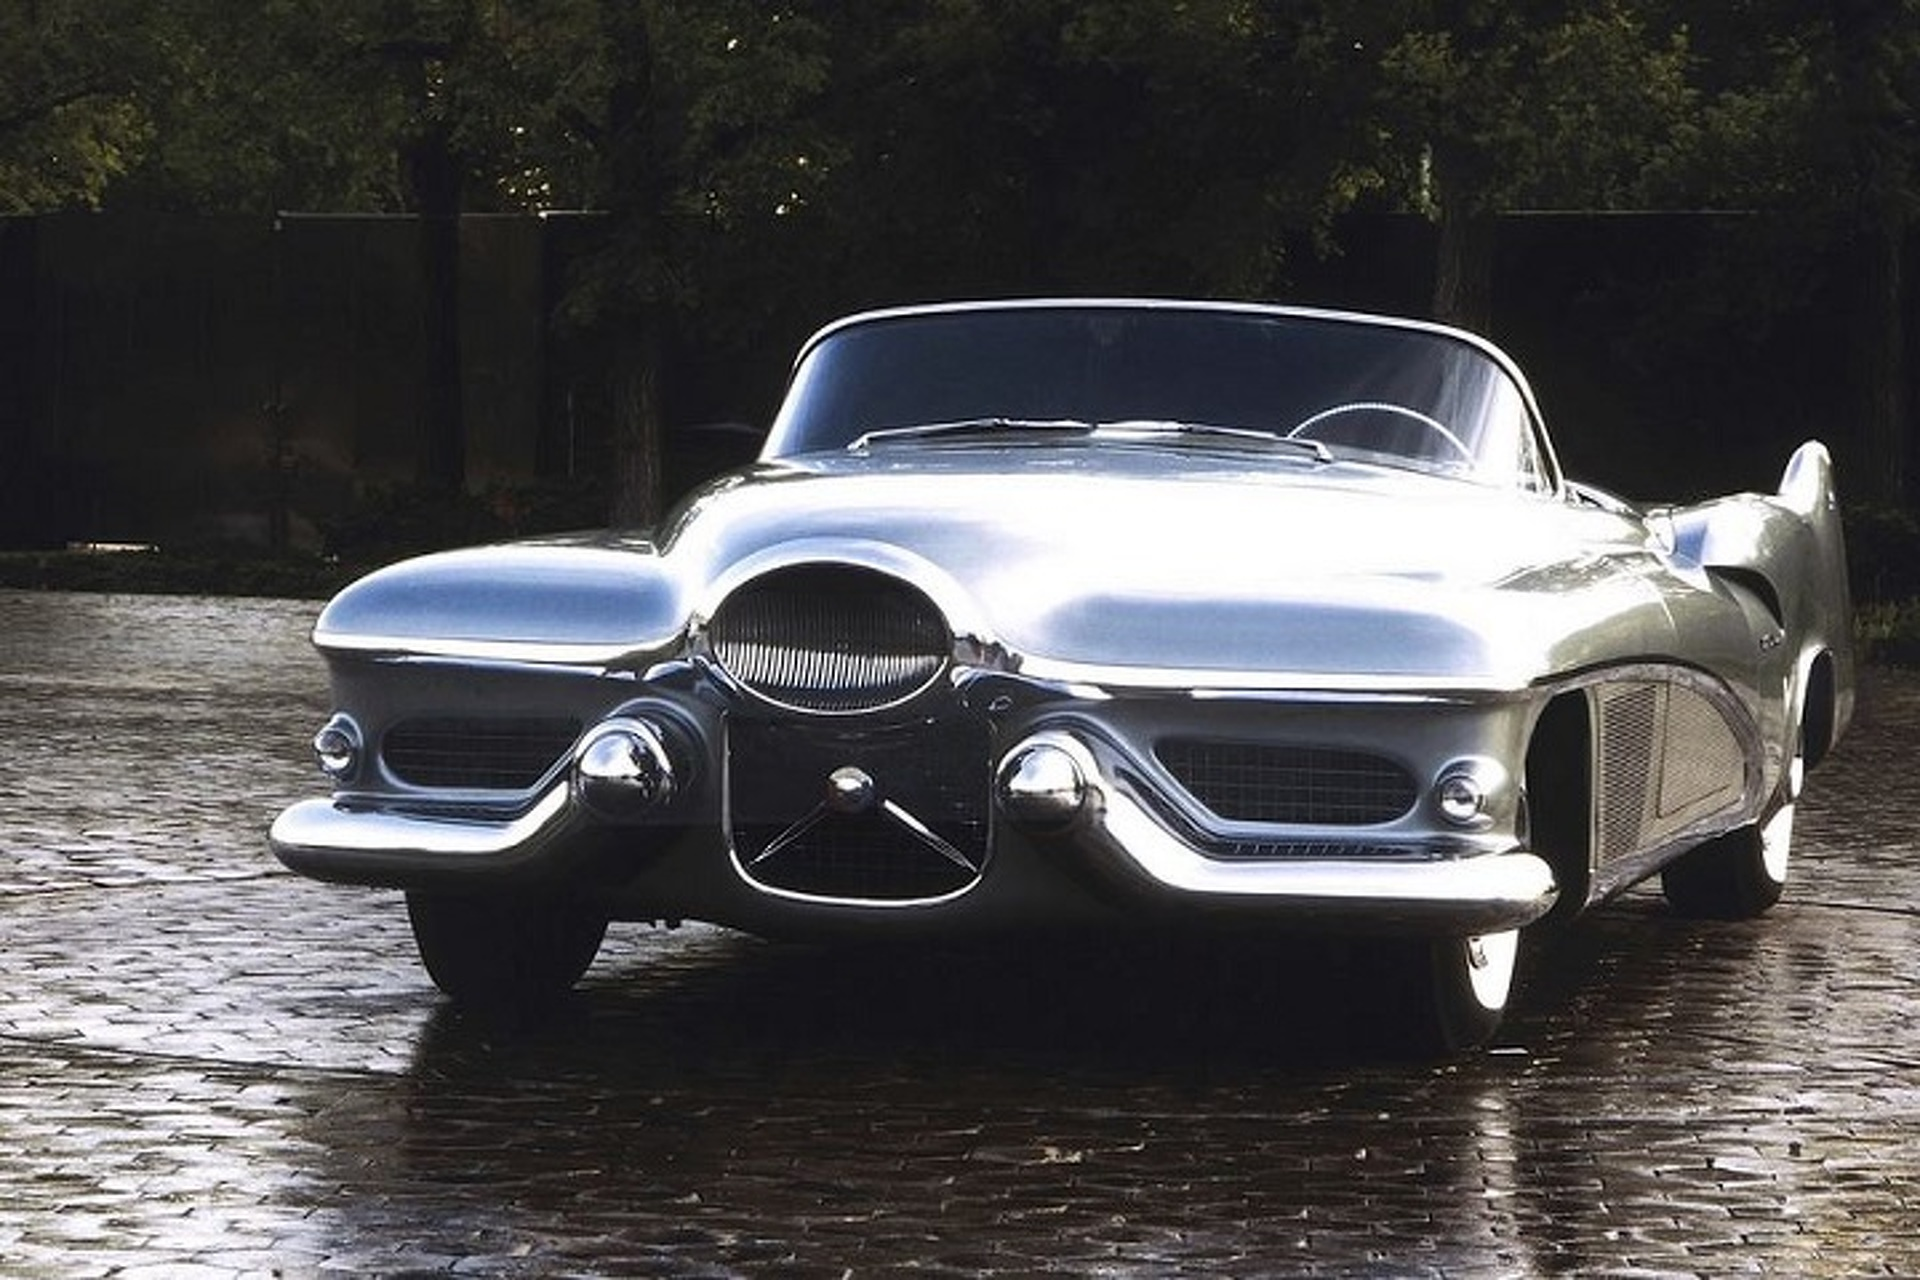 https://icdn-0.motor1.com/images/mgl/1YxrX/s1/the-1951-buick-lesabre-concept-took-inspiration-from-jet-fighters.jpg